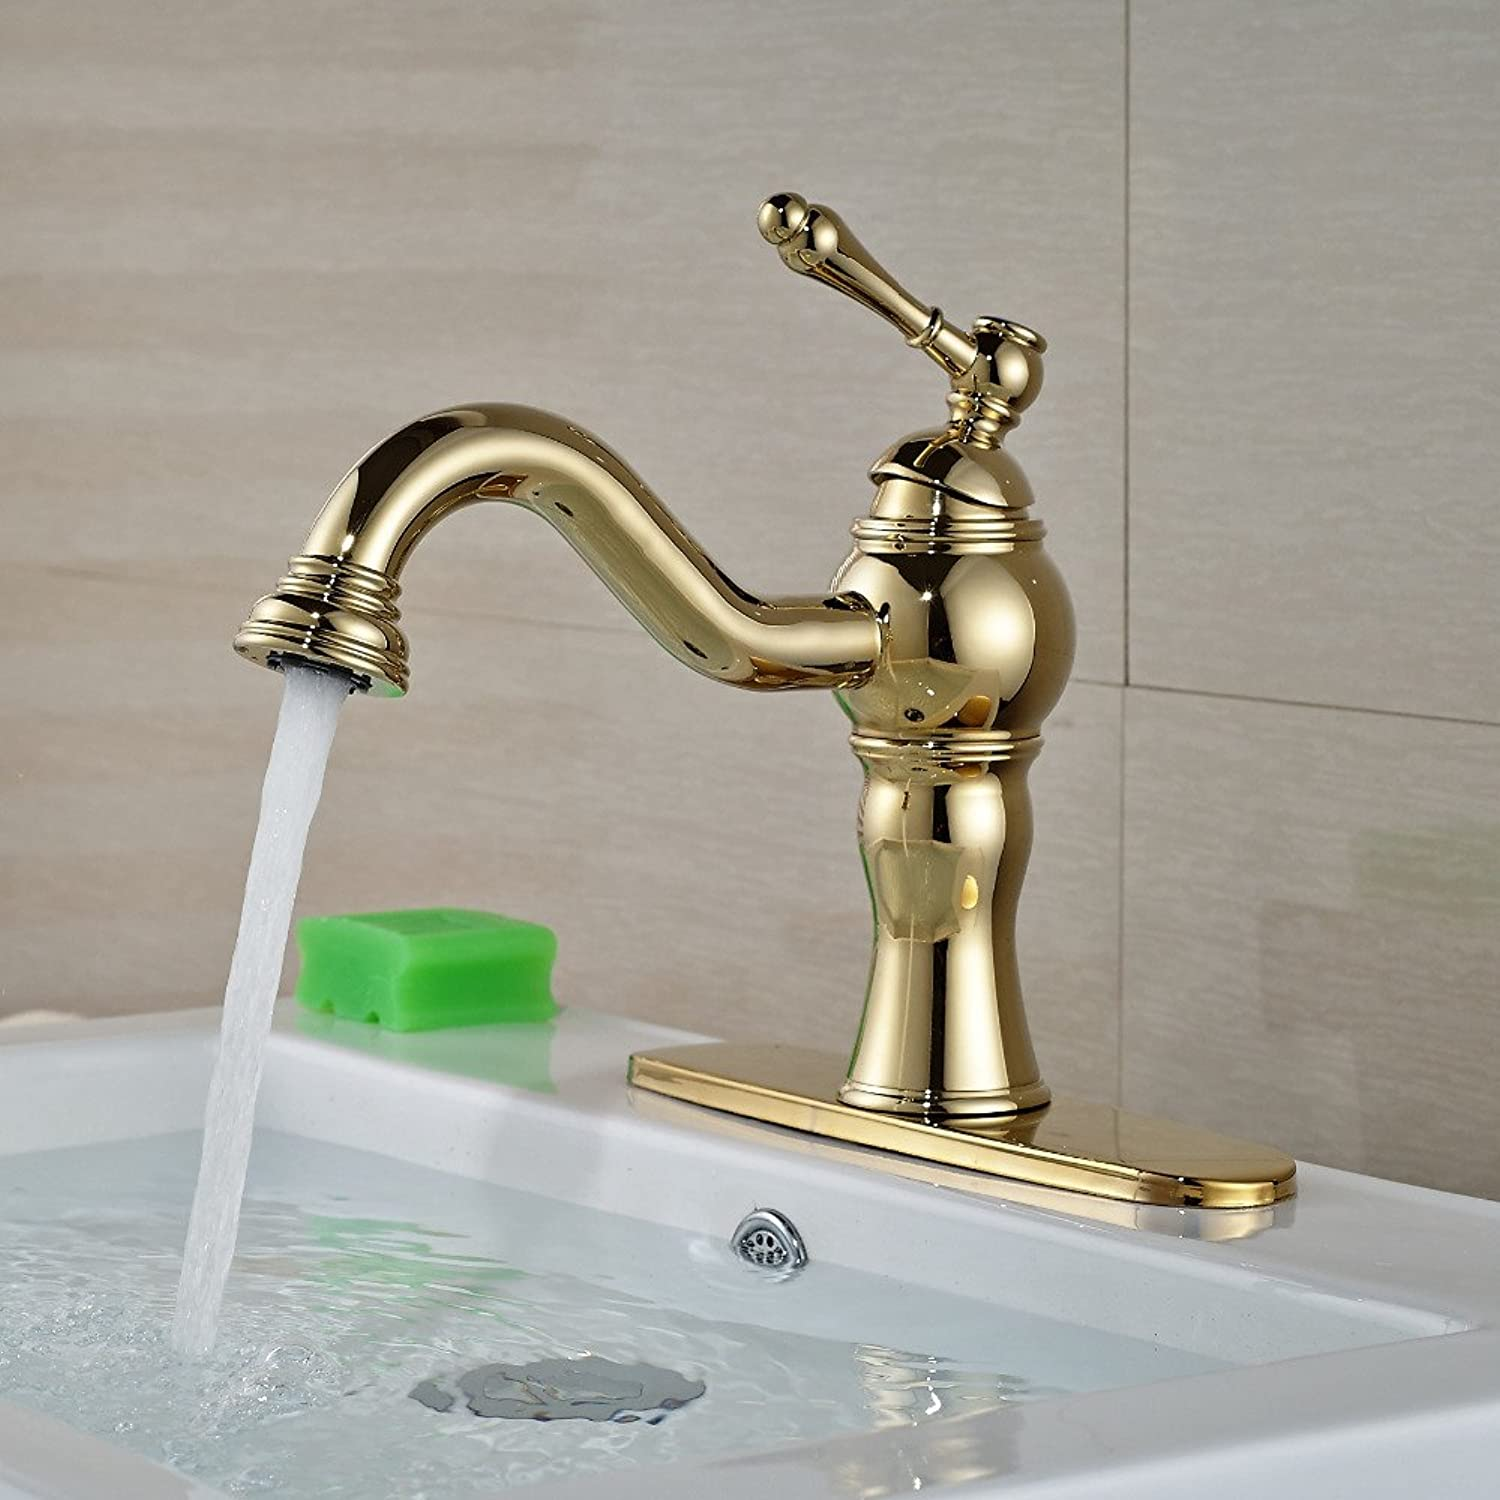 Maifeini The Luxurious gold Brass Faucets Click Deck Install Bathroom Basin Mixer Single Shank Hole Mixer Tap Template